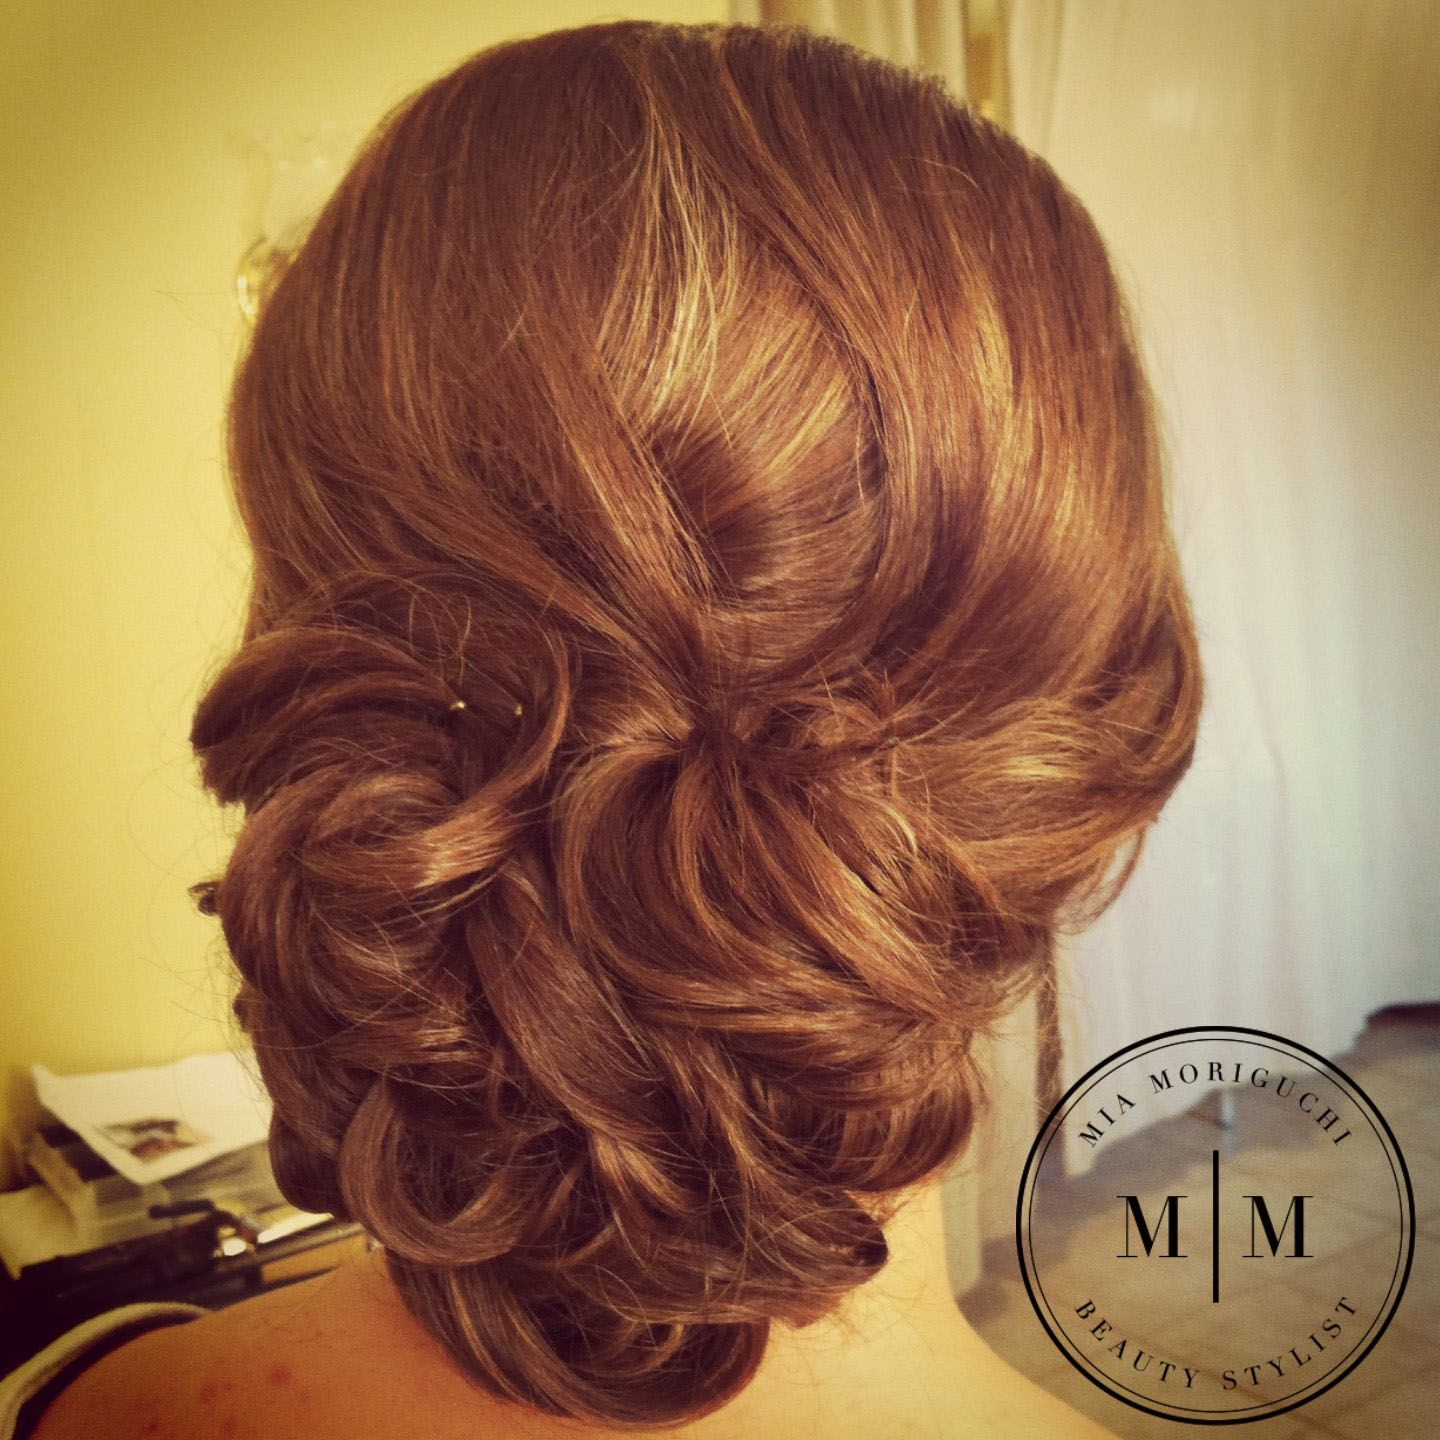 My wedding hair hair styles and accessories pinterest low